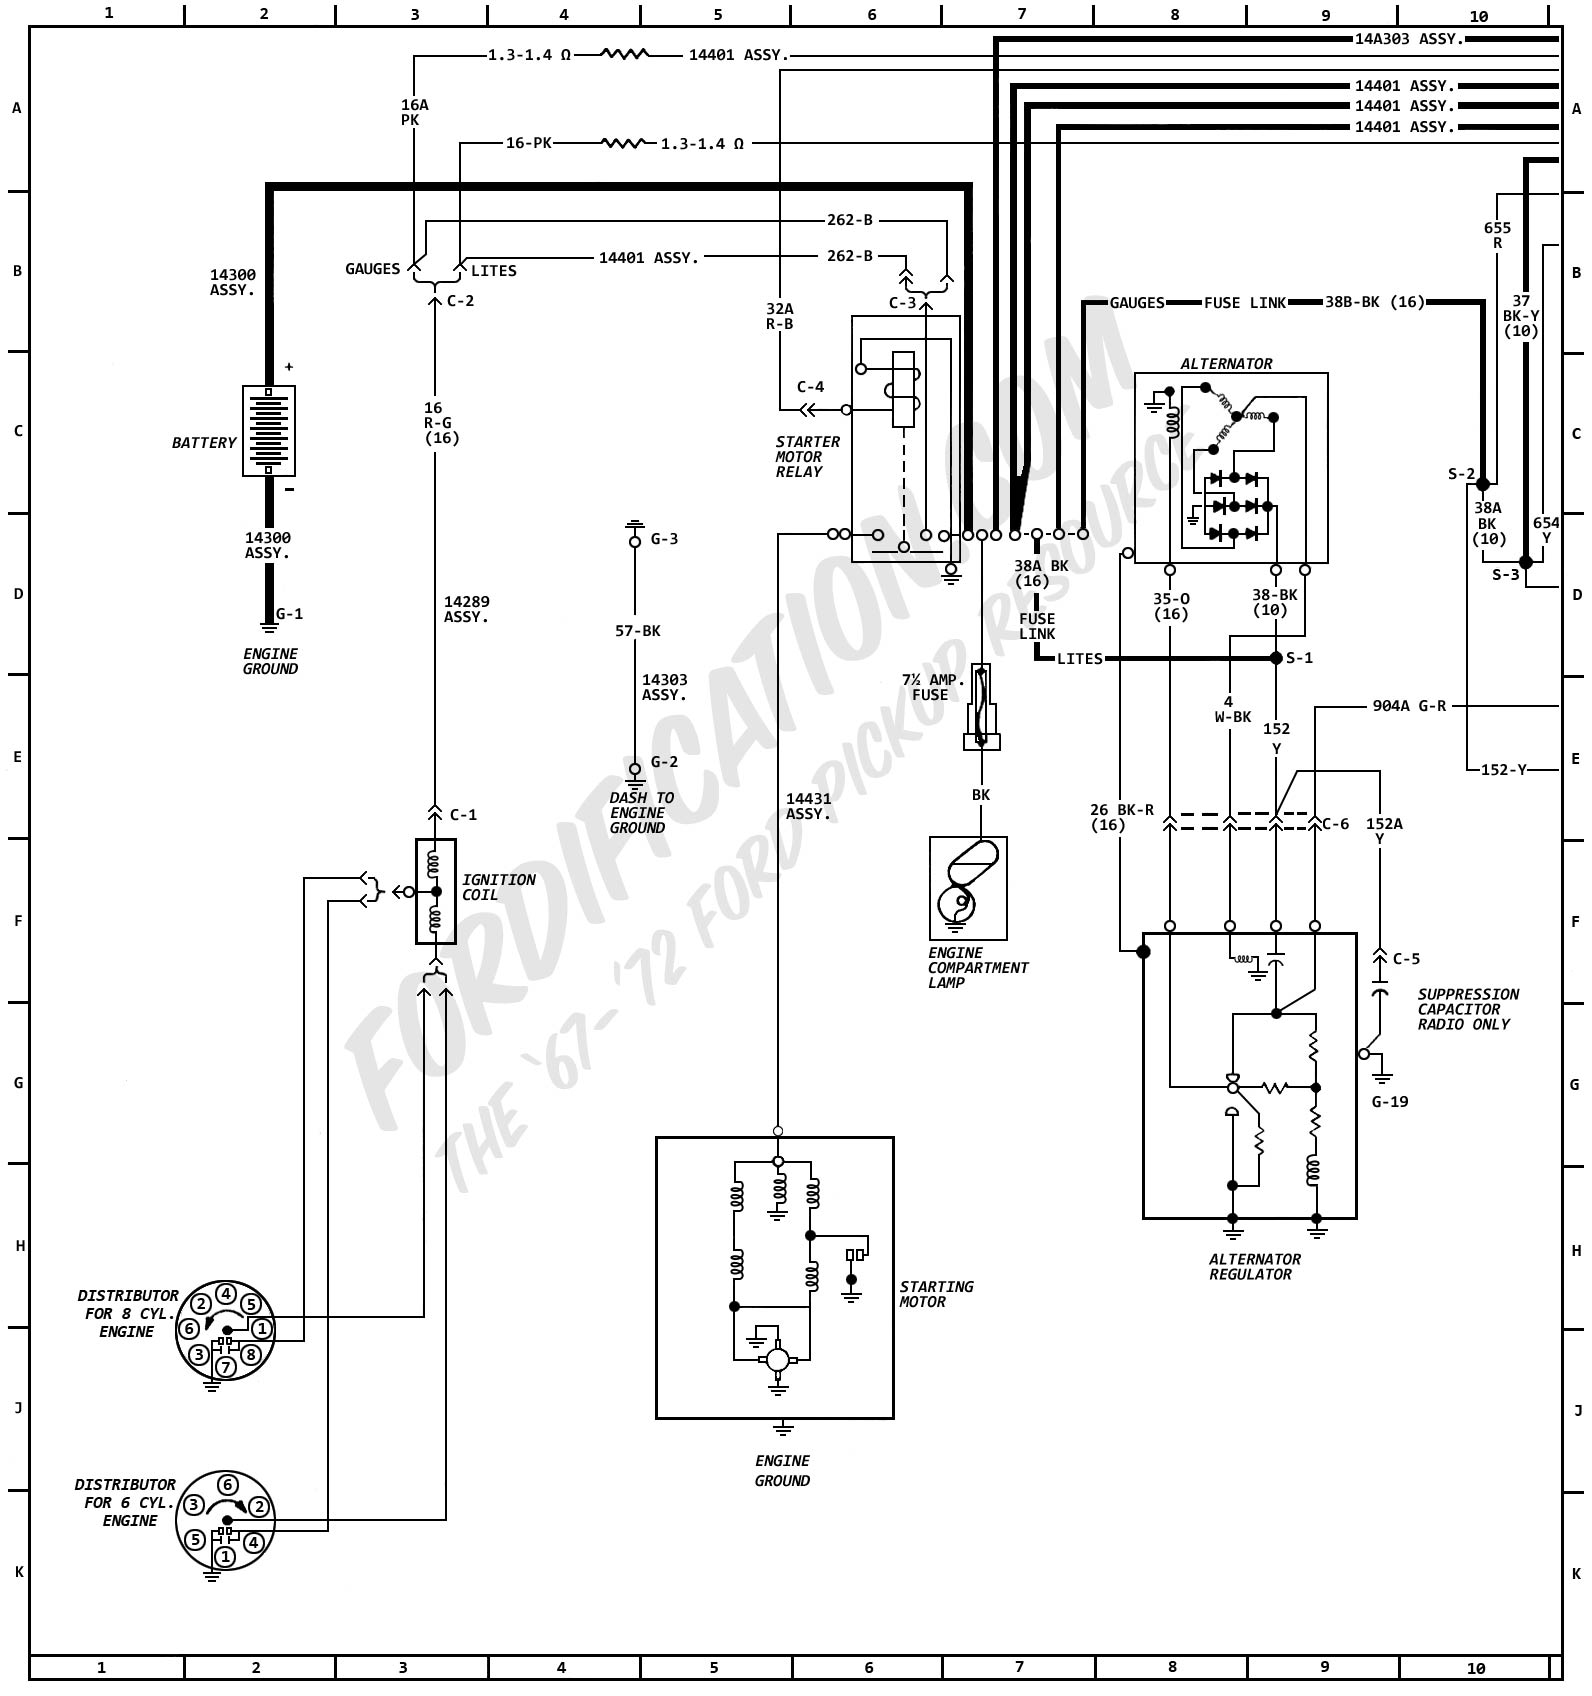 1972MasterWiring_01 1972 ford truck wiring diagrams fordification com Wiring Diagram for 1965 Chevy Truck at honlapkeszites.co